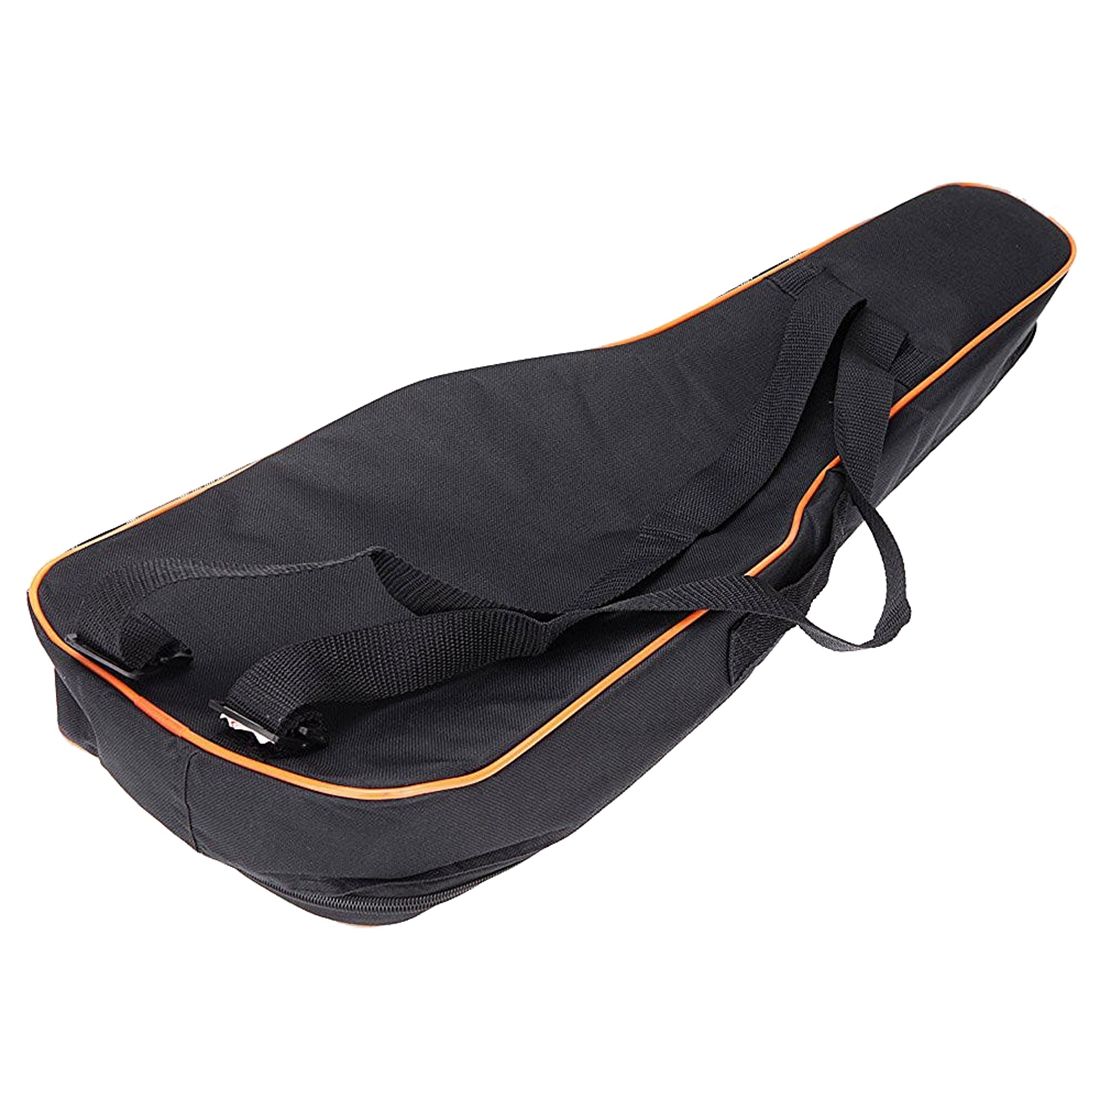 26 27 Guitar Oxford cloth Water resistant bag